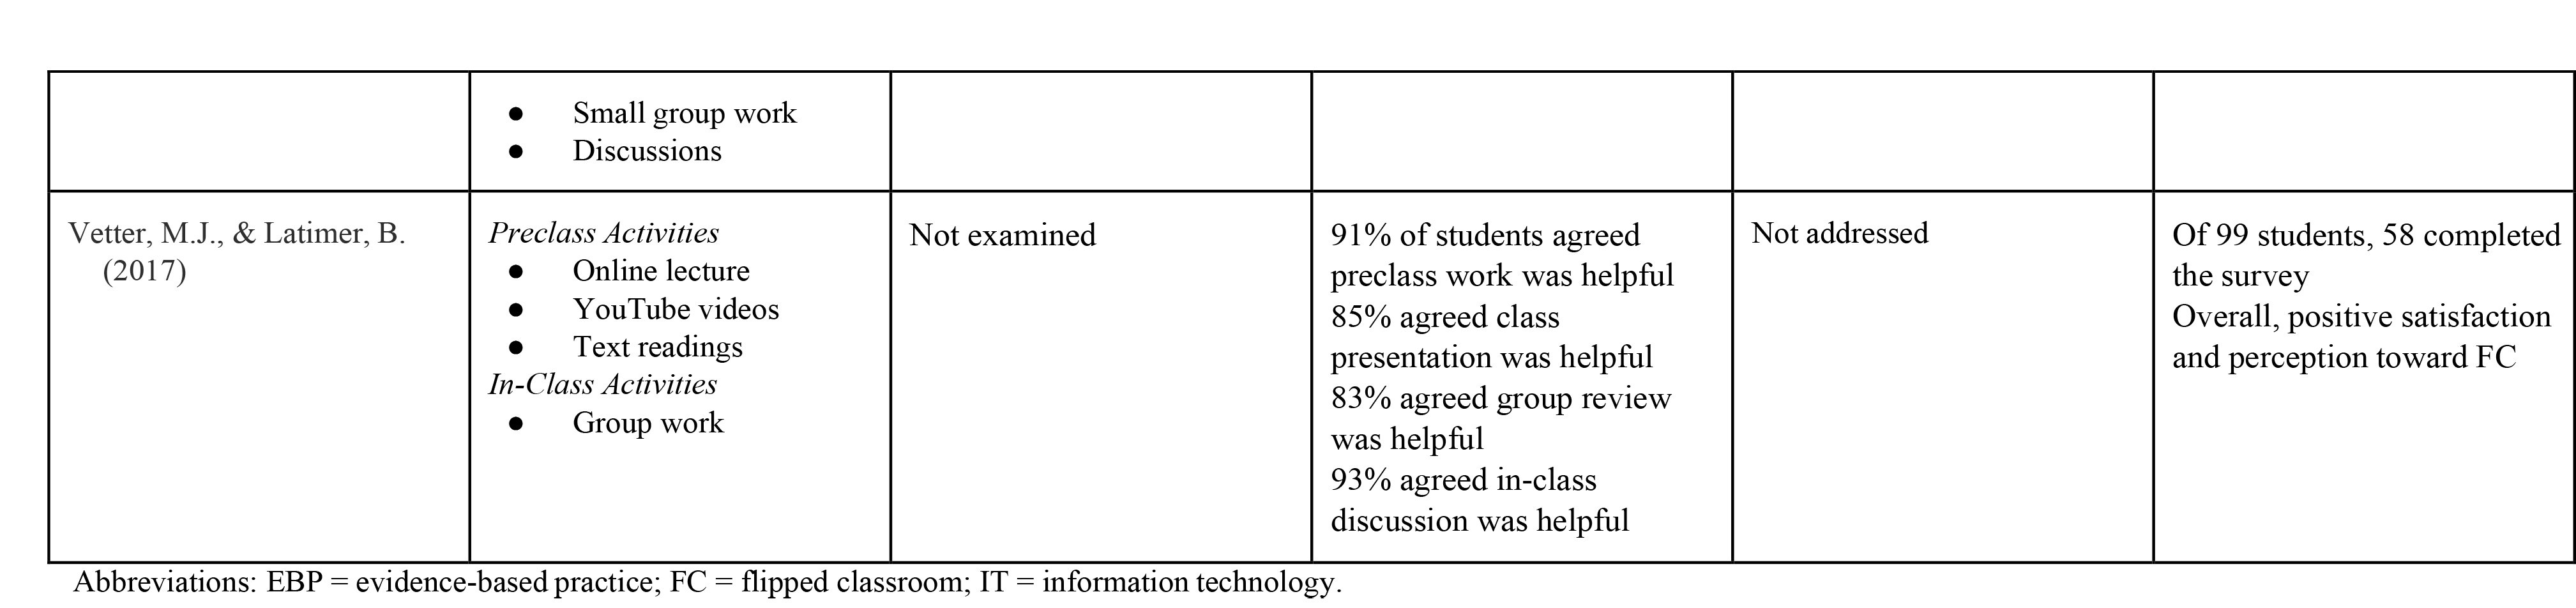 Flipped Classroom Synthesis Table